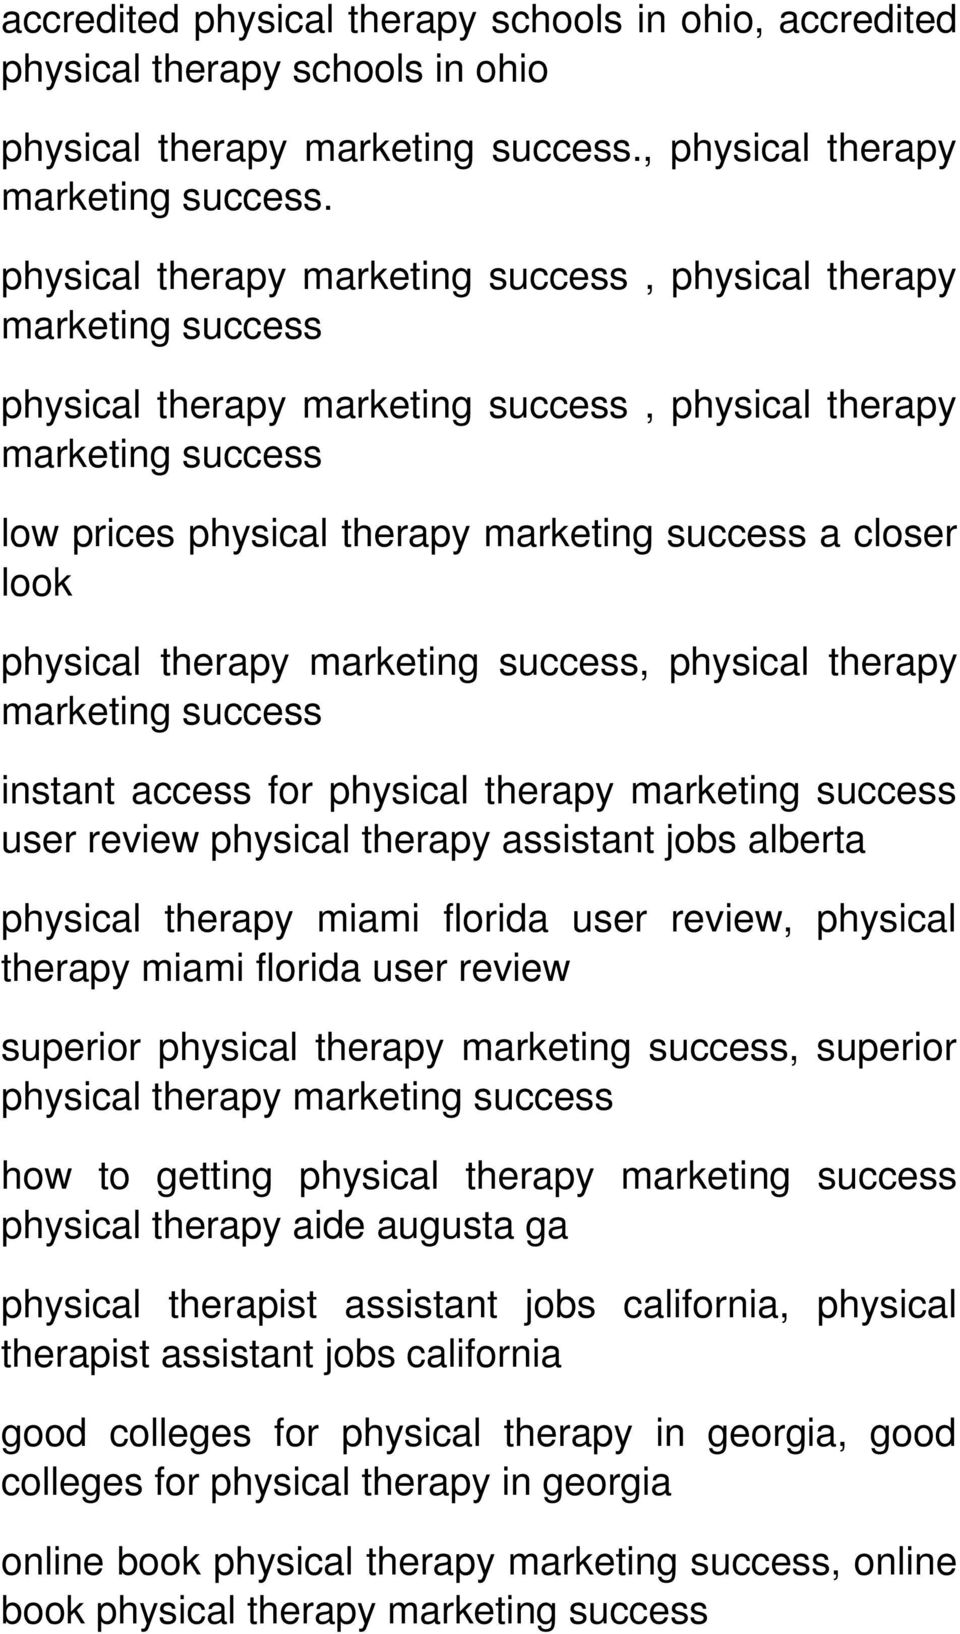 physical therapy assistant jobs alberta physical therapy miami florida user review, physical therapy miami florida user review superior physical therapy, superior physical therapy how to getting